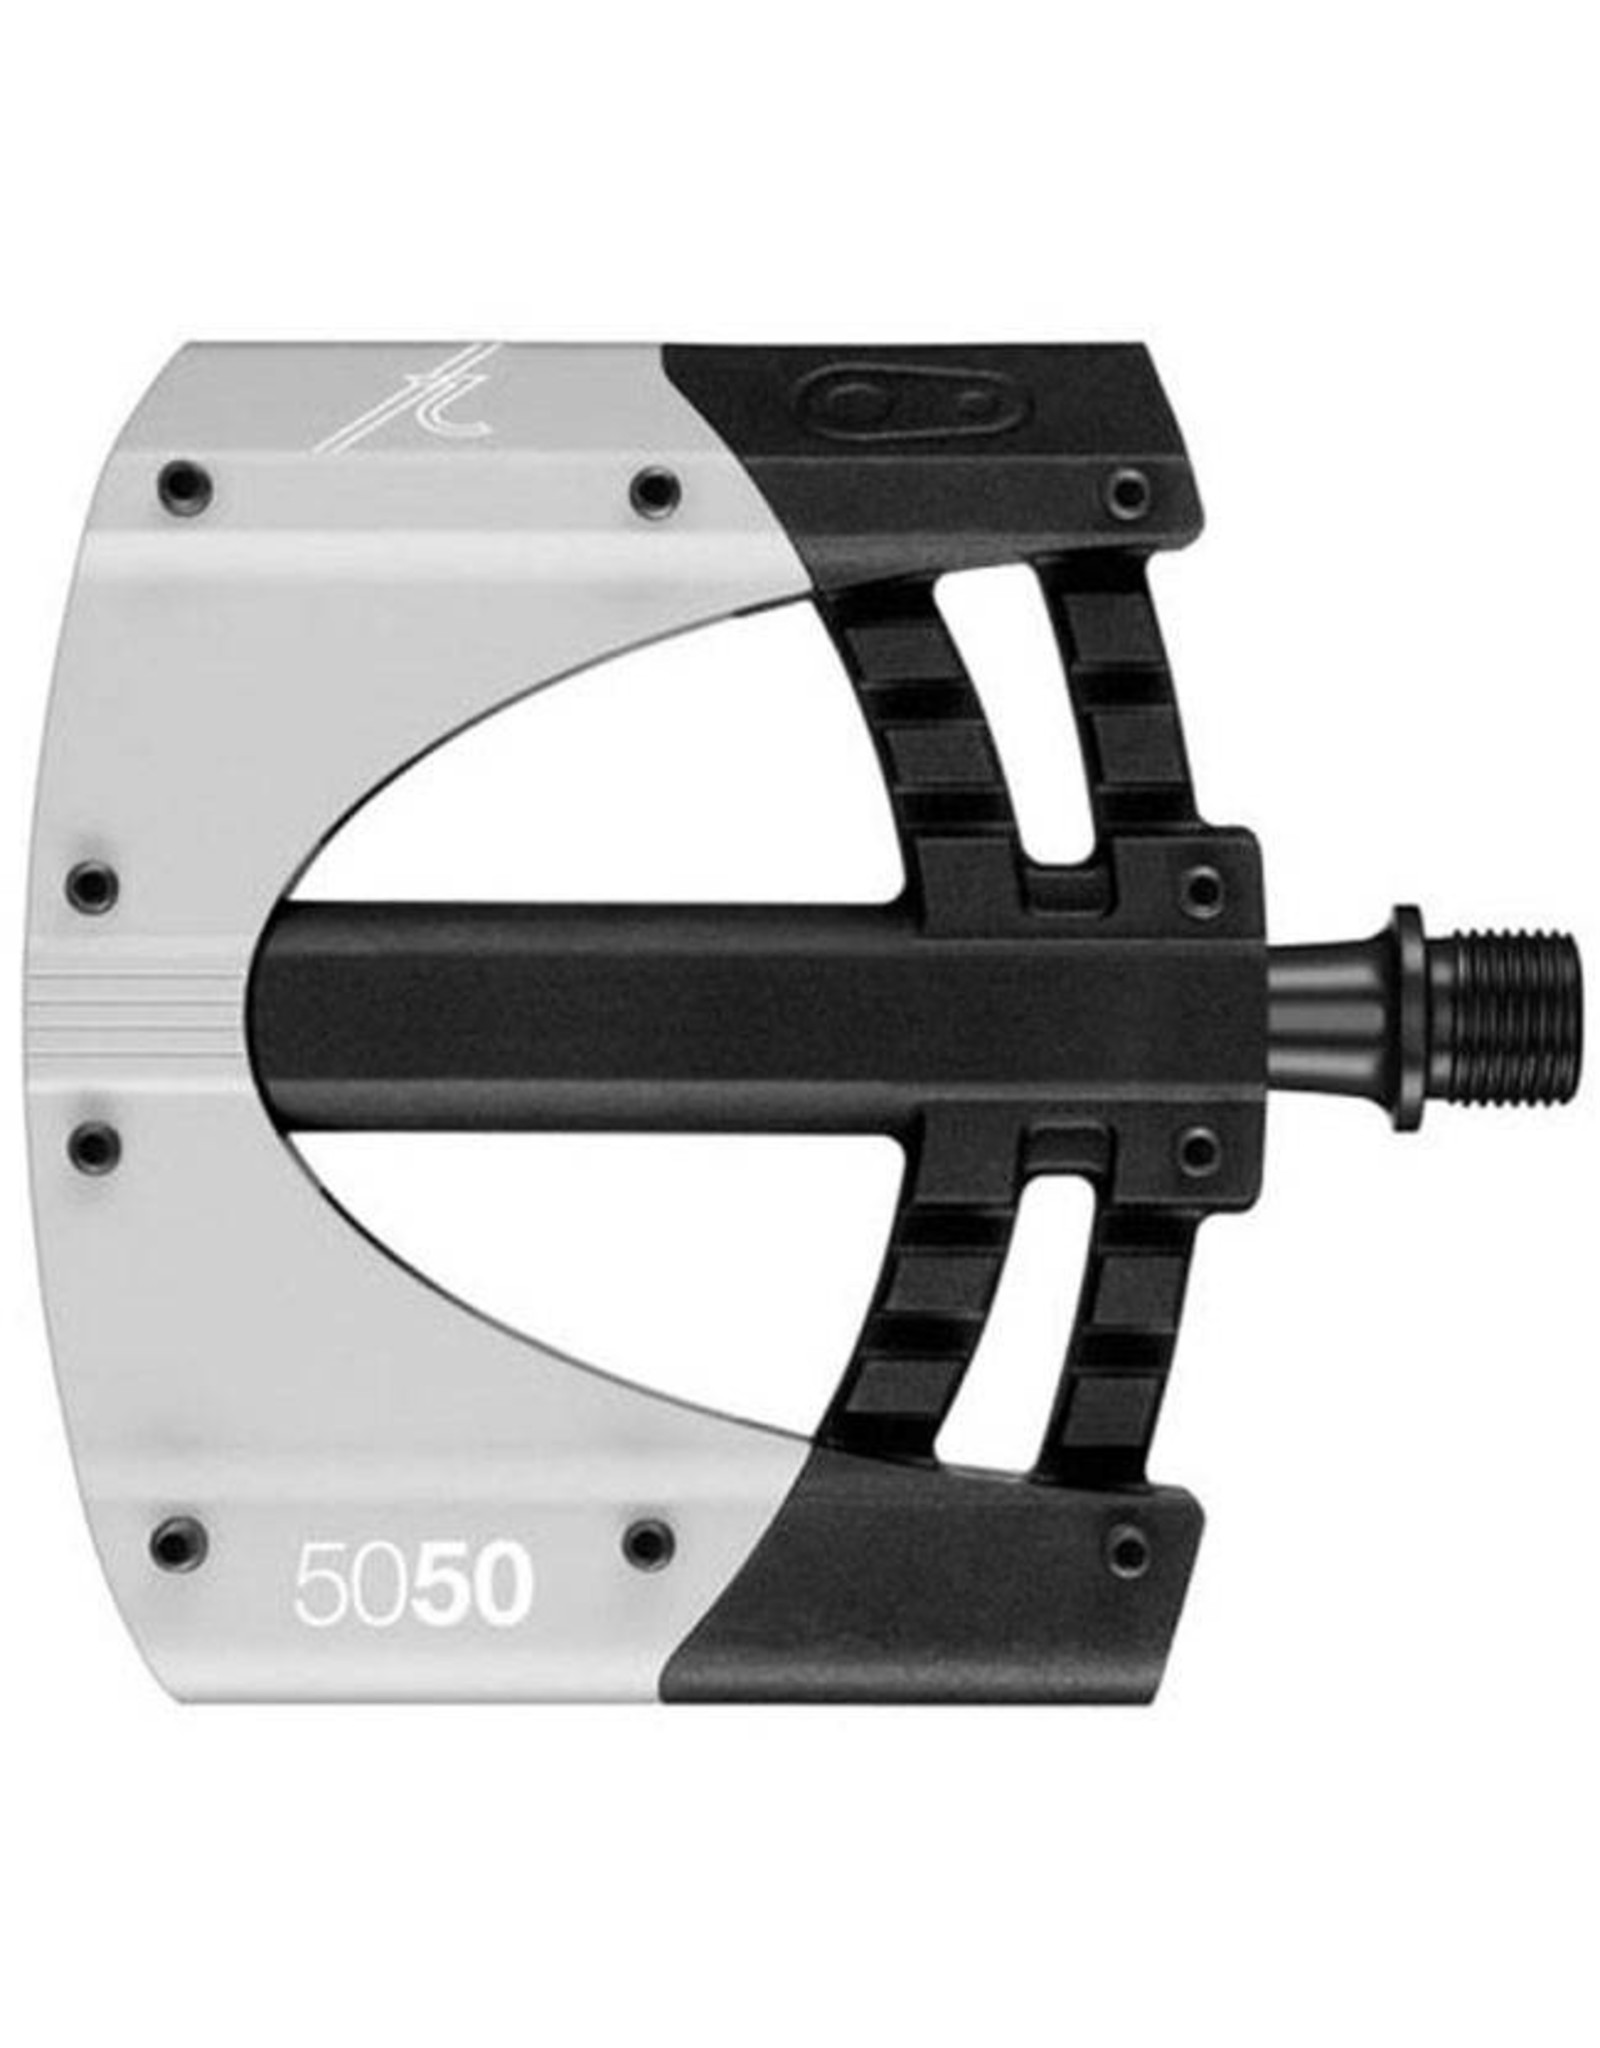 Crank Brothers Crank Brothers  5050 2 Pedals: Black/Silver